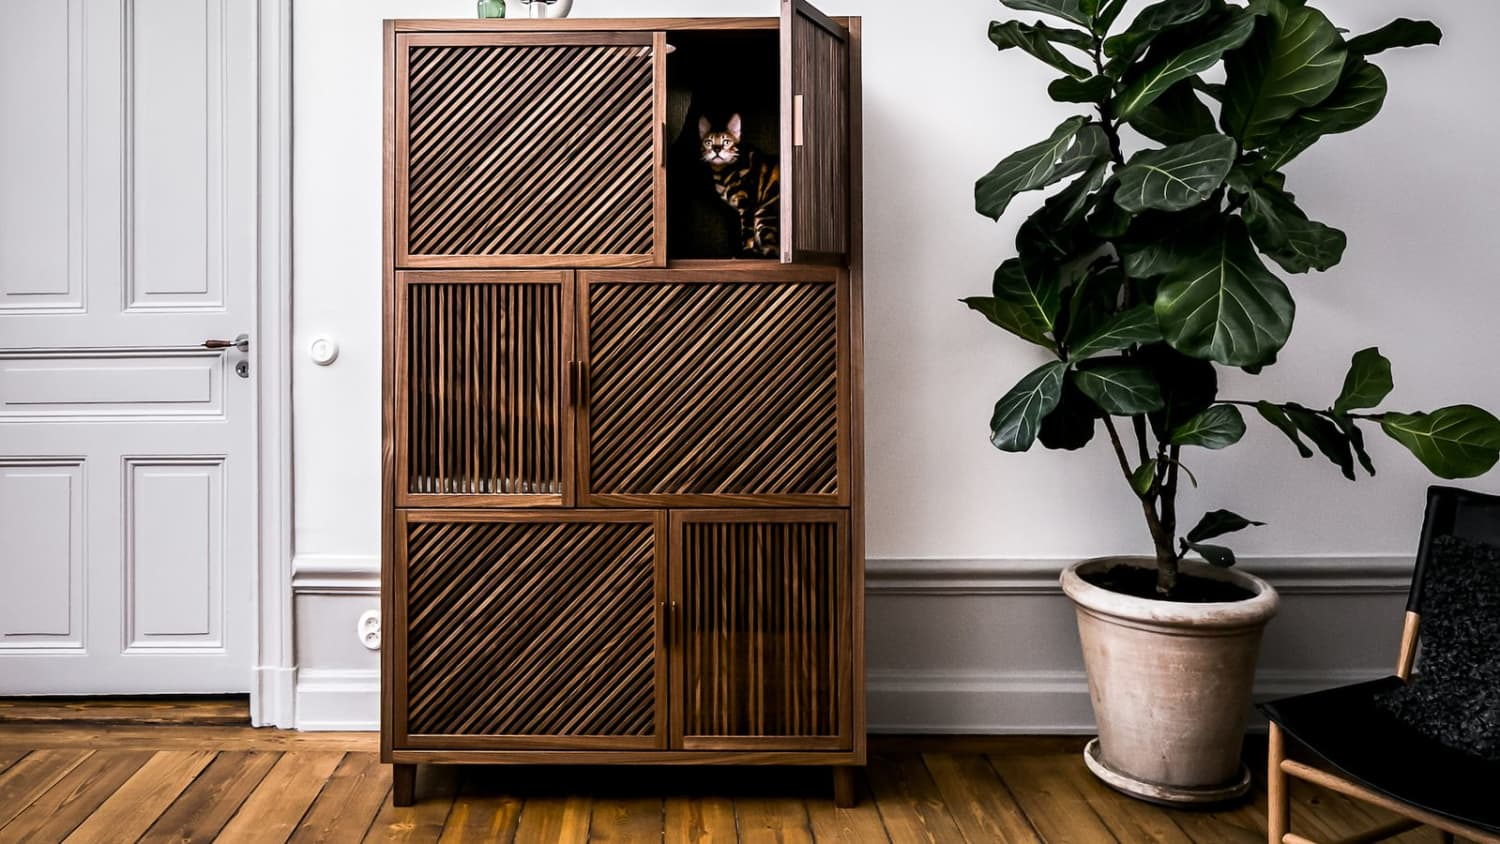 This Bespoke Cabinet Opens Up to Reveal A Hidden 'Cat Flat'